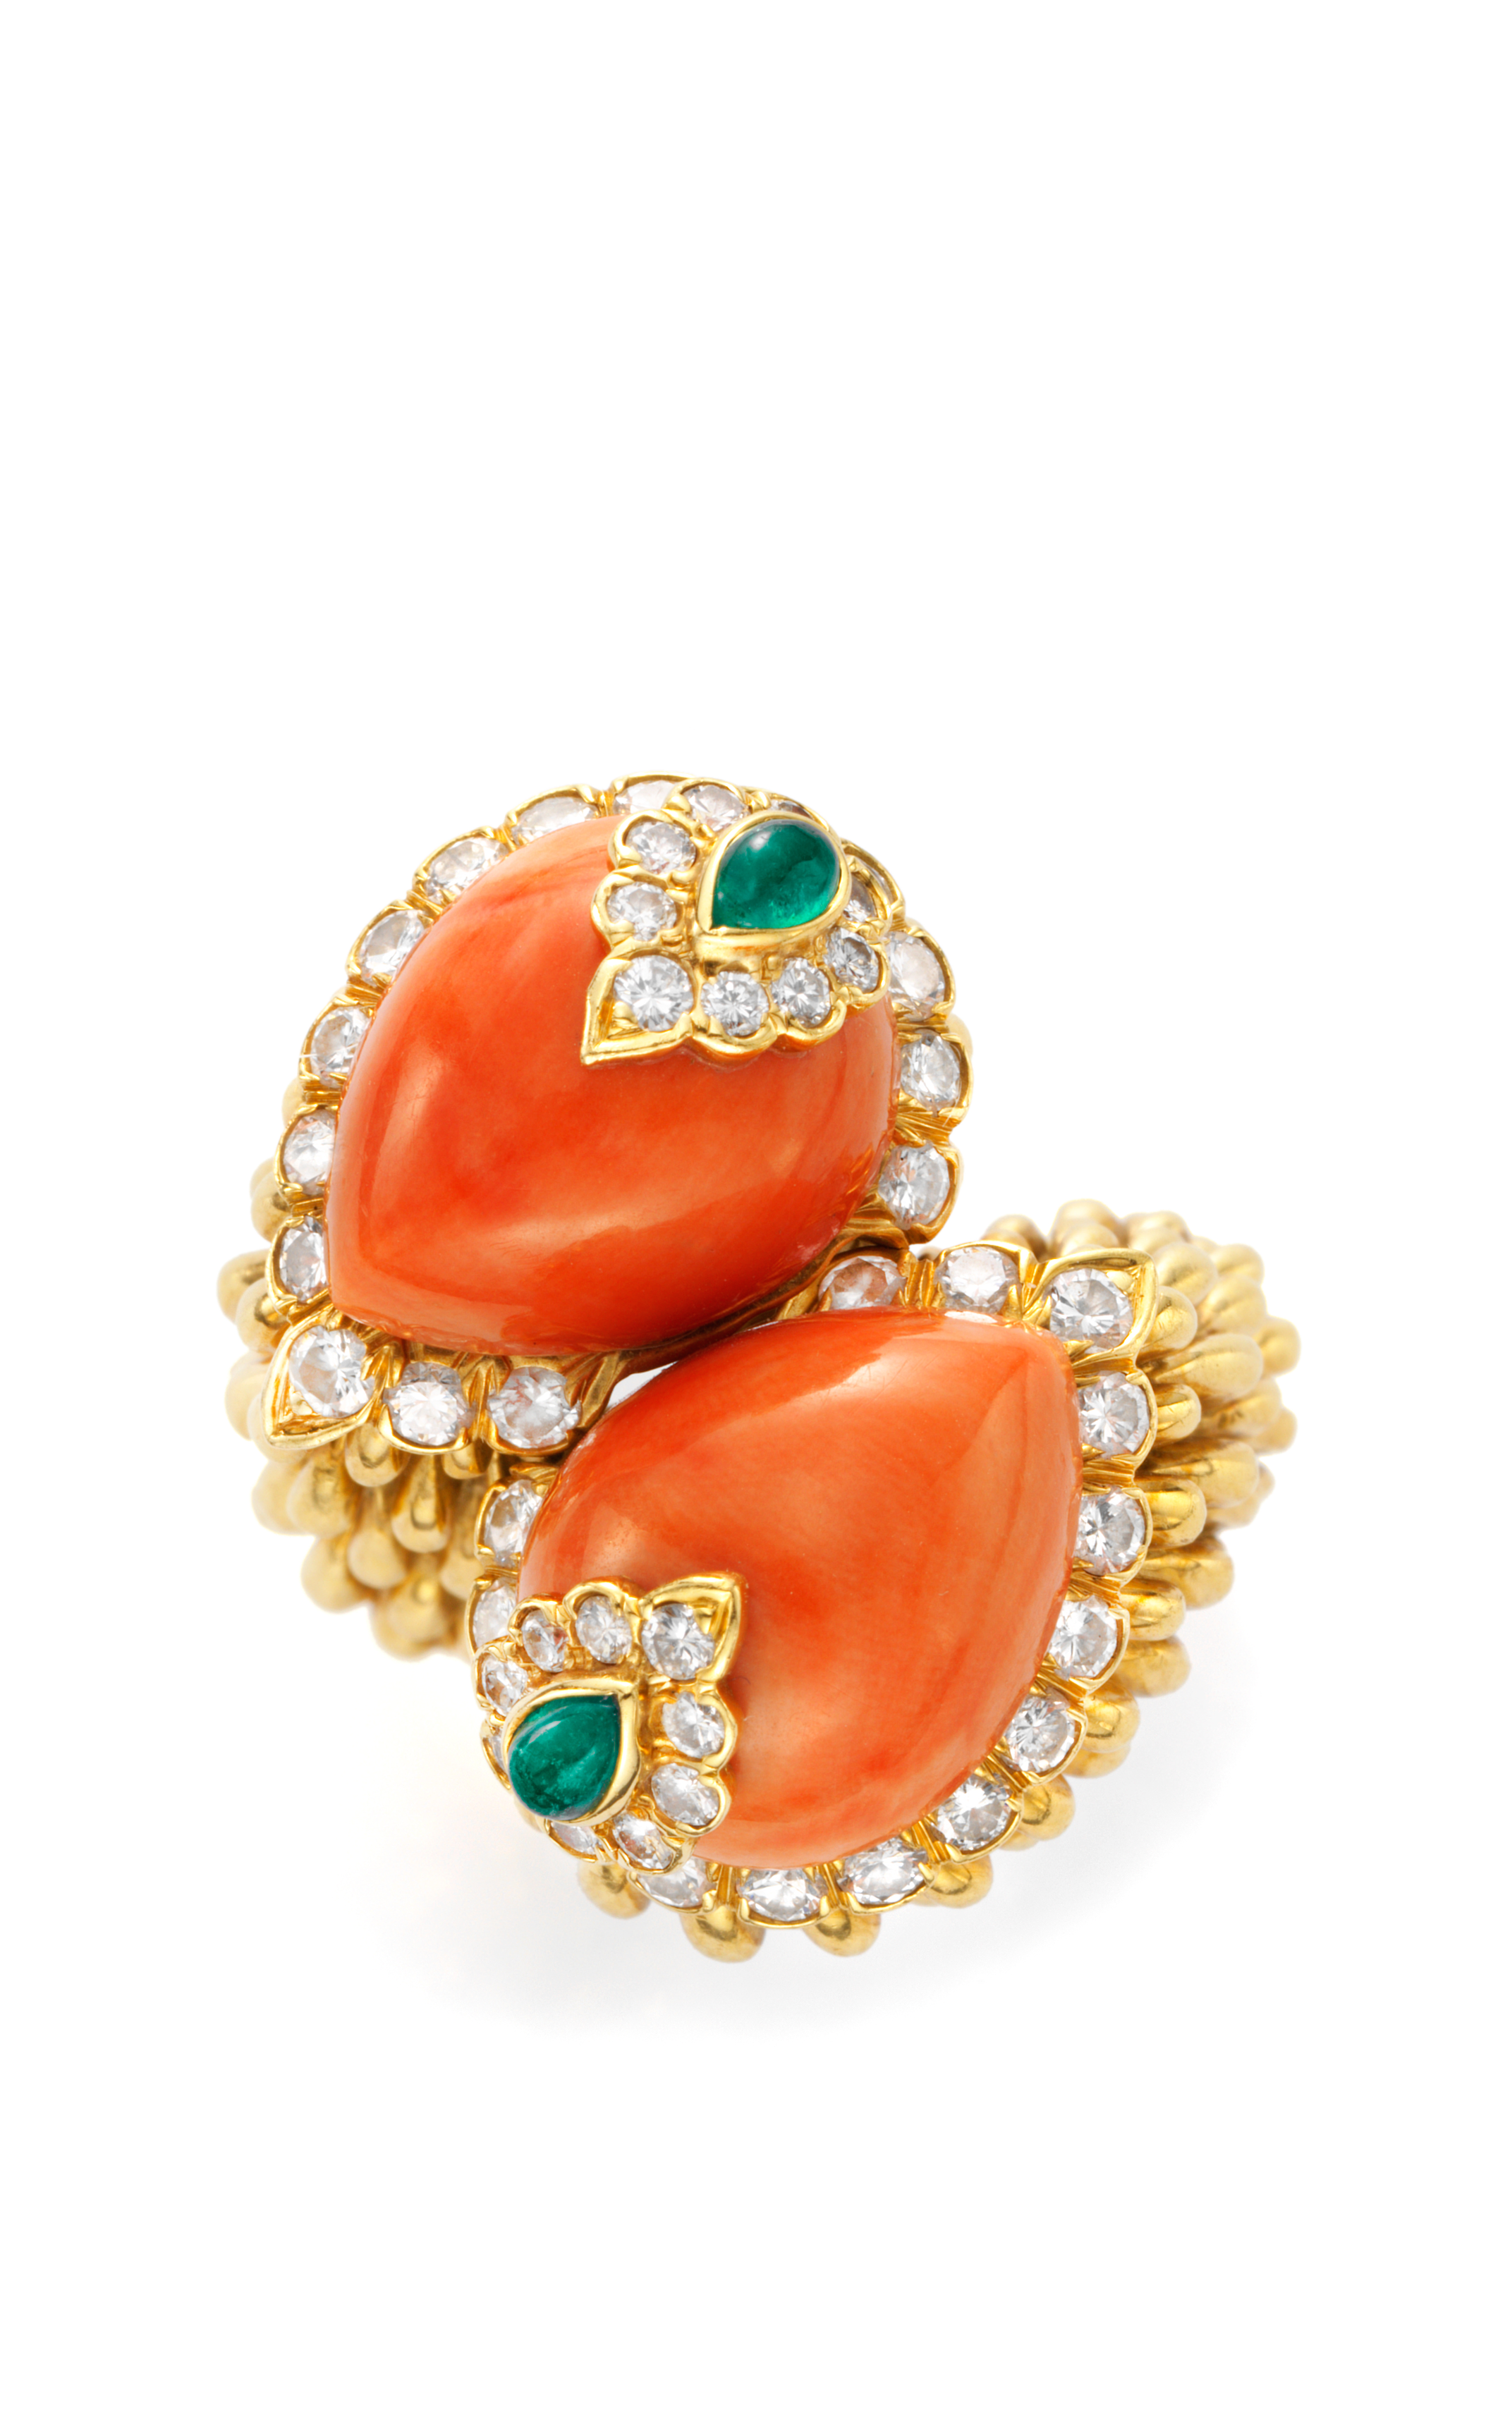 en jewellery and ecatalogue lot sotheby jewels for auctions tiffany schlumberger c s rings lr coral magnificent